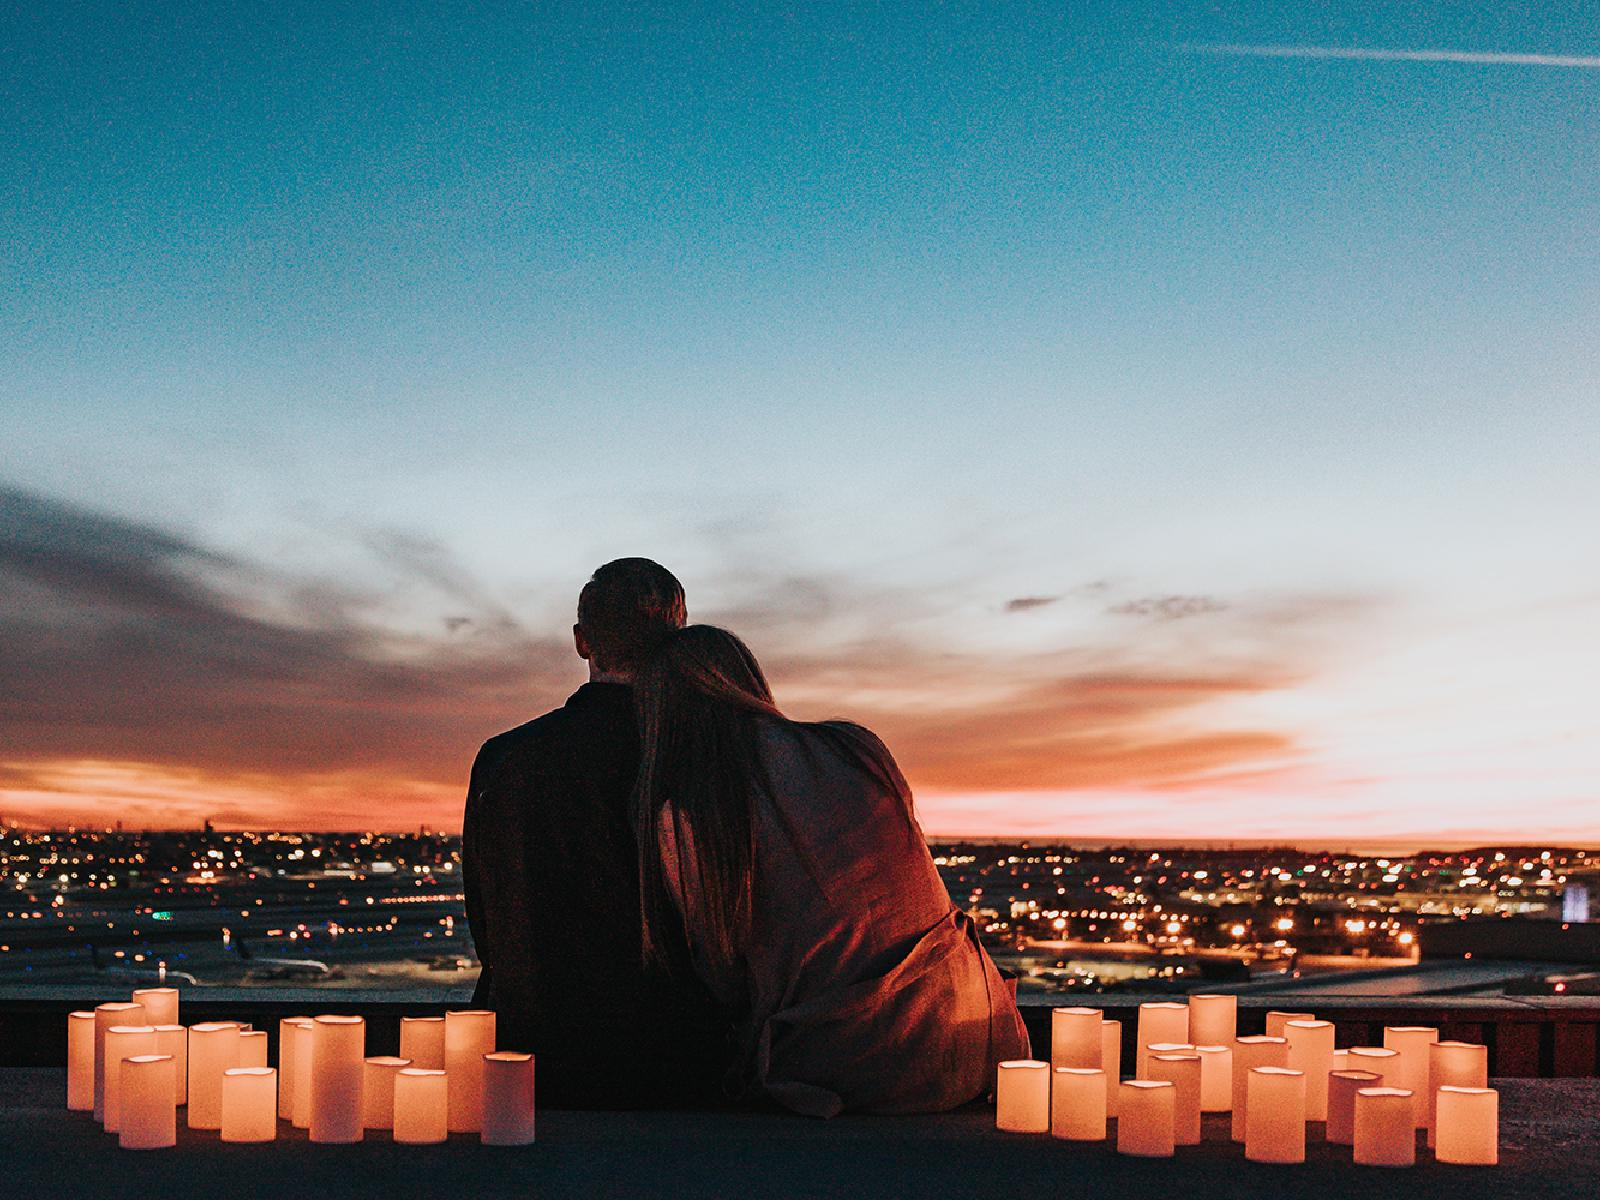 Topics To Avoid While Having A Date